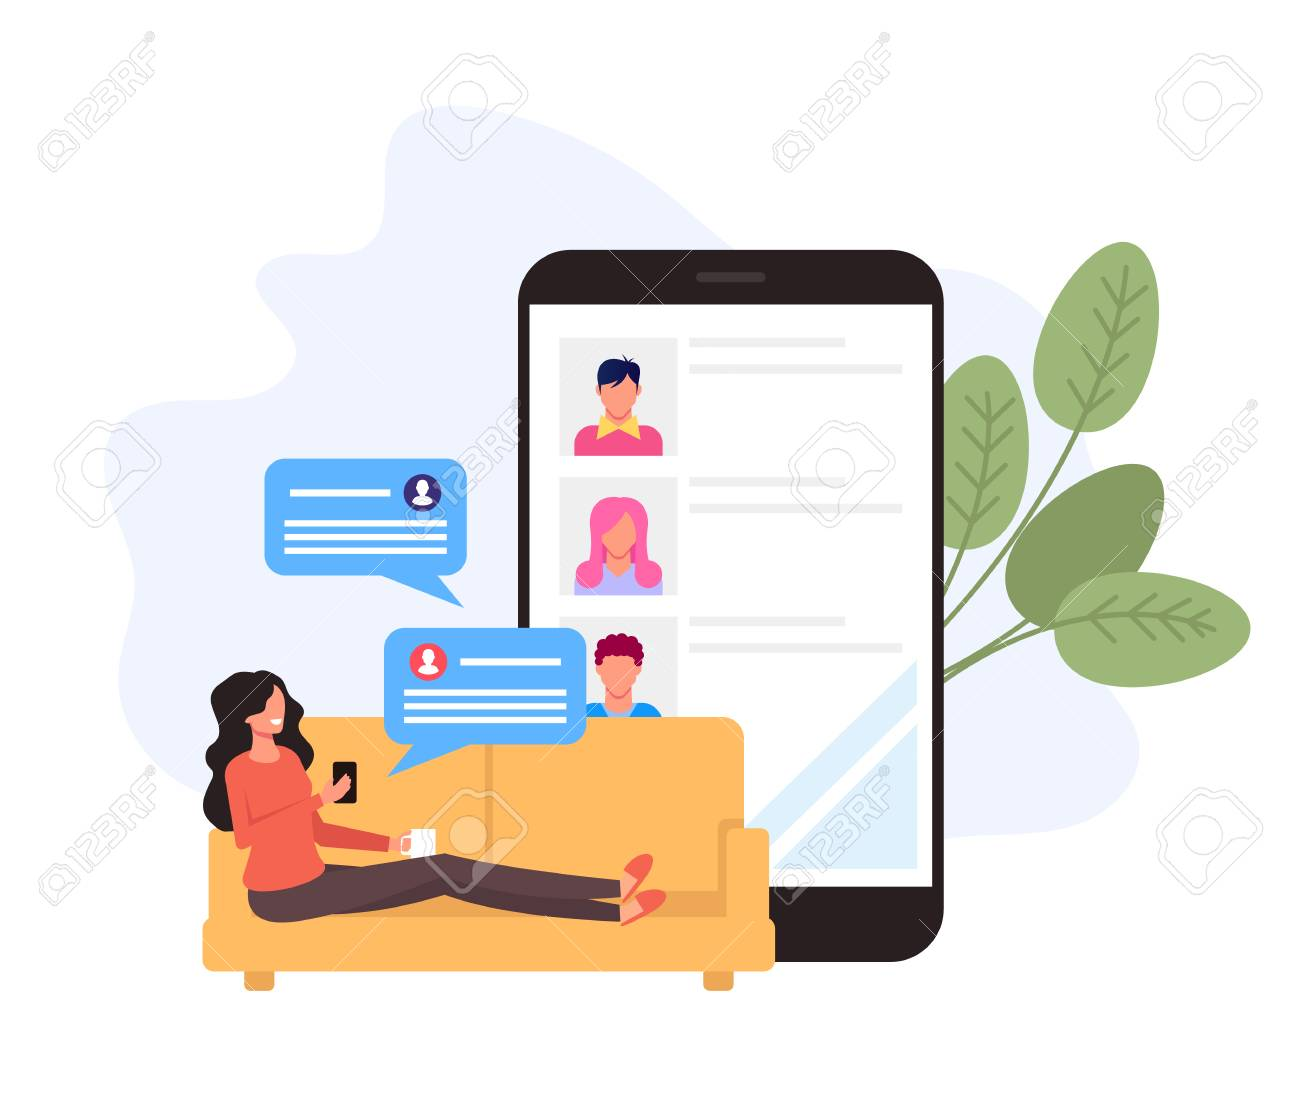 Chat online free with friends